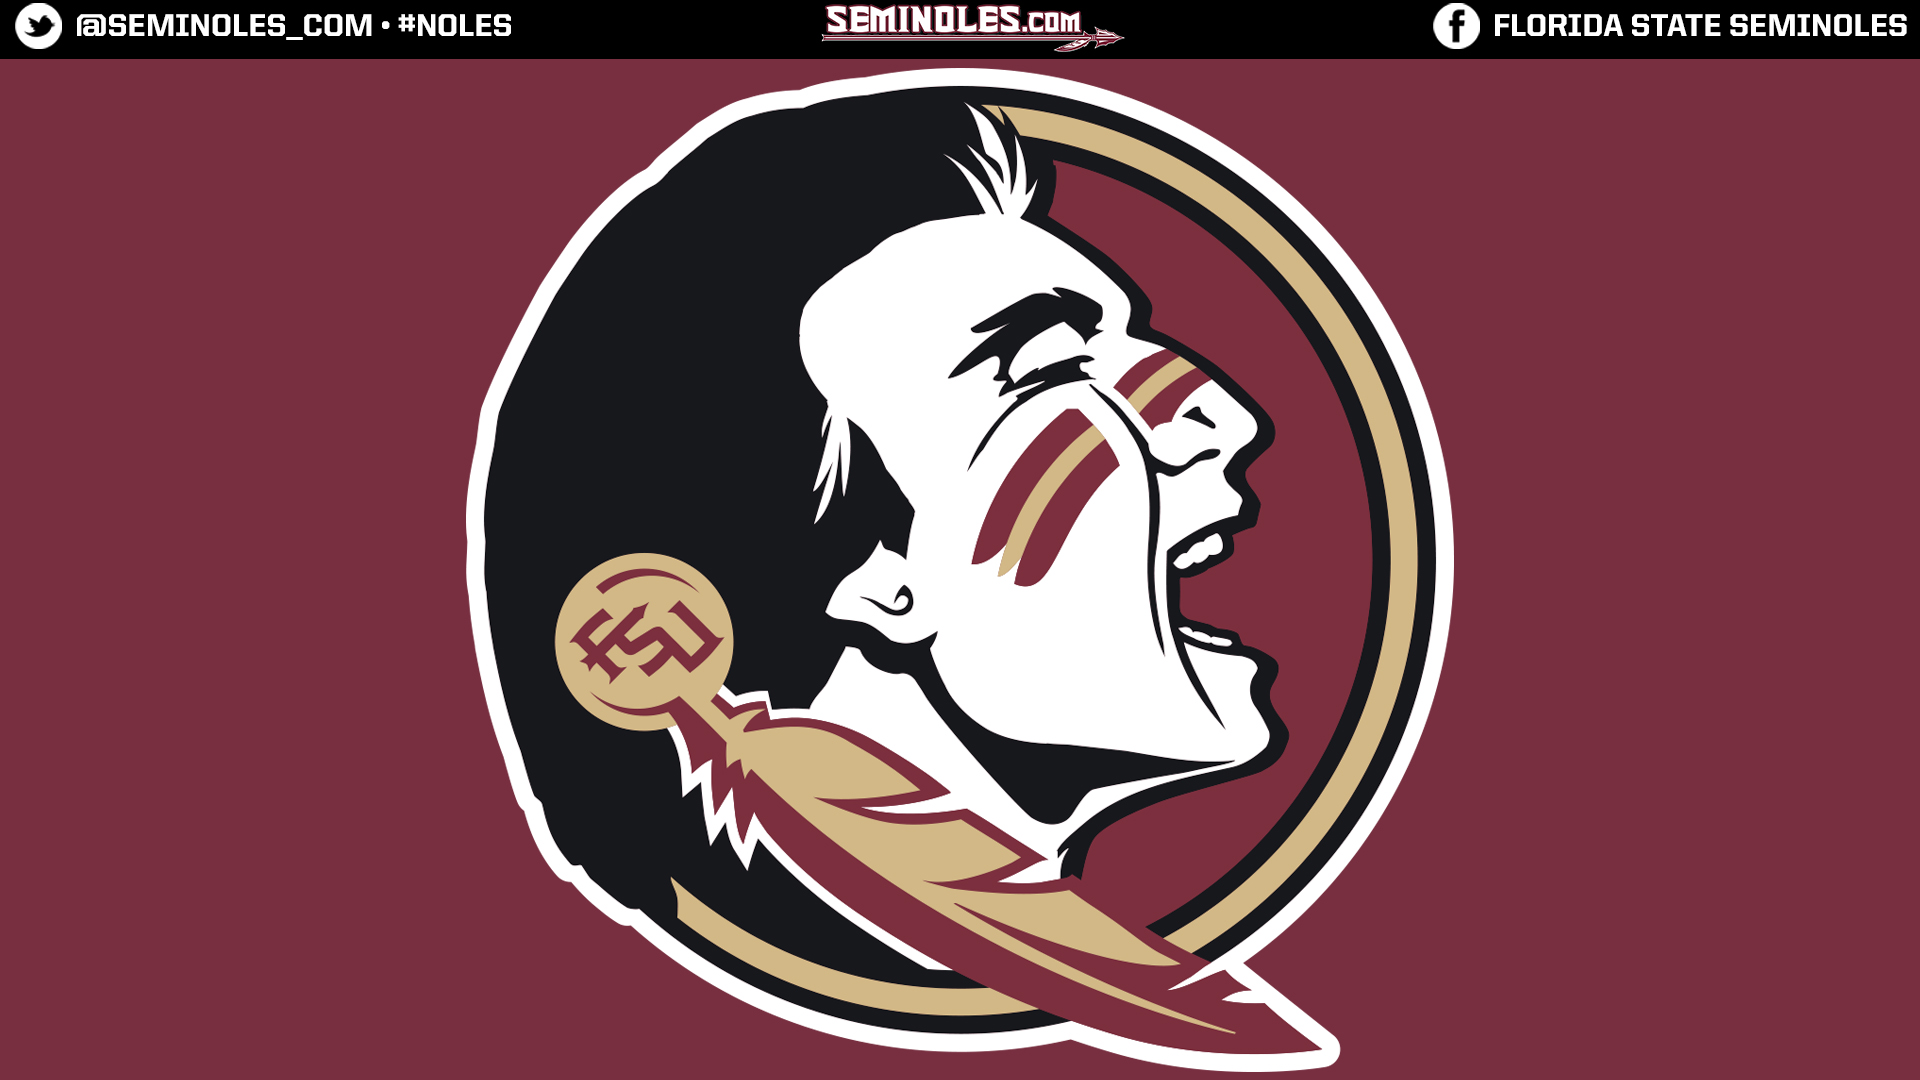 SEMINOLES.COM DESKTOP WALLPAPERS.